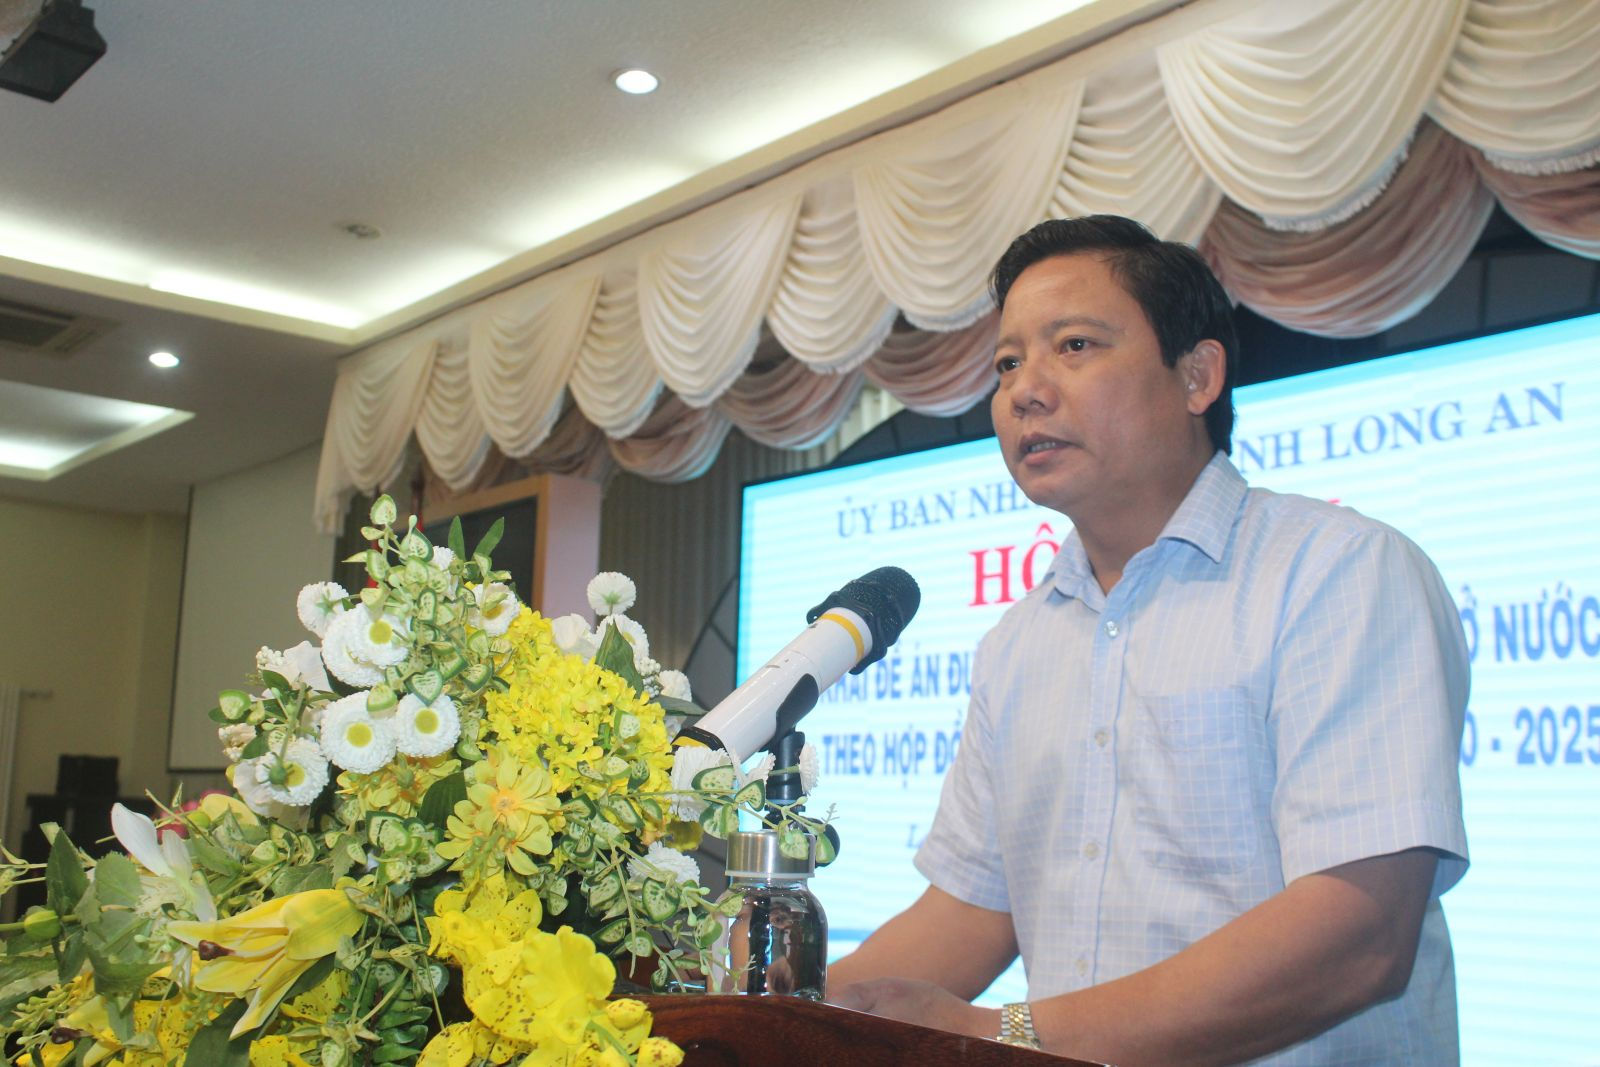 Vice Chairman of Long An People's Committee - Pham Tan Hoa affirmed: Do not send workers to labor export at all costs, quality and prestige must be put on top.